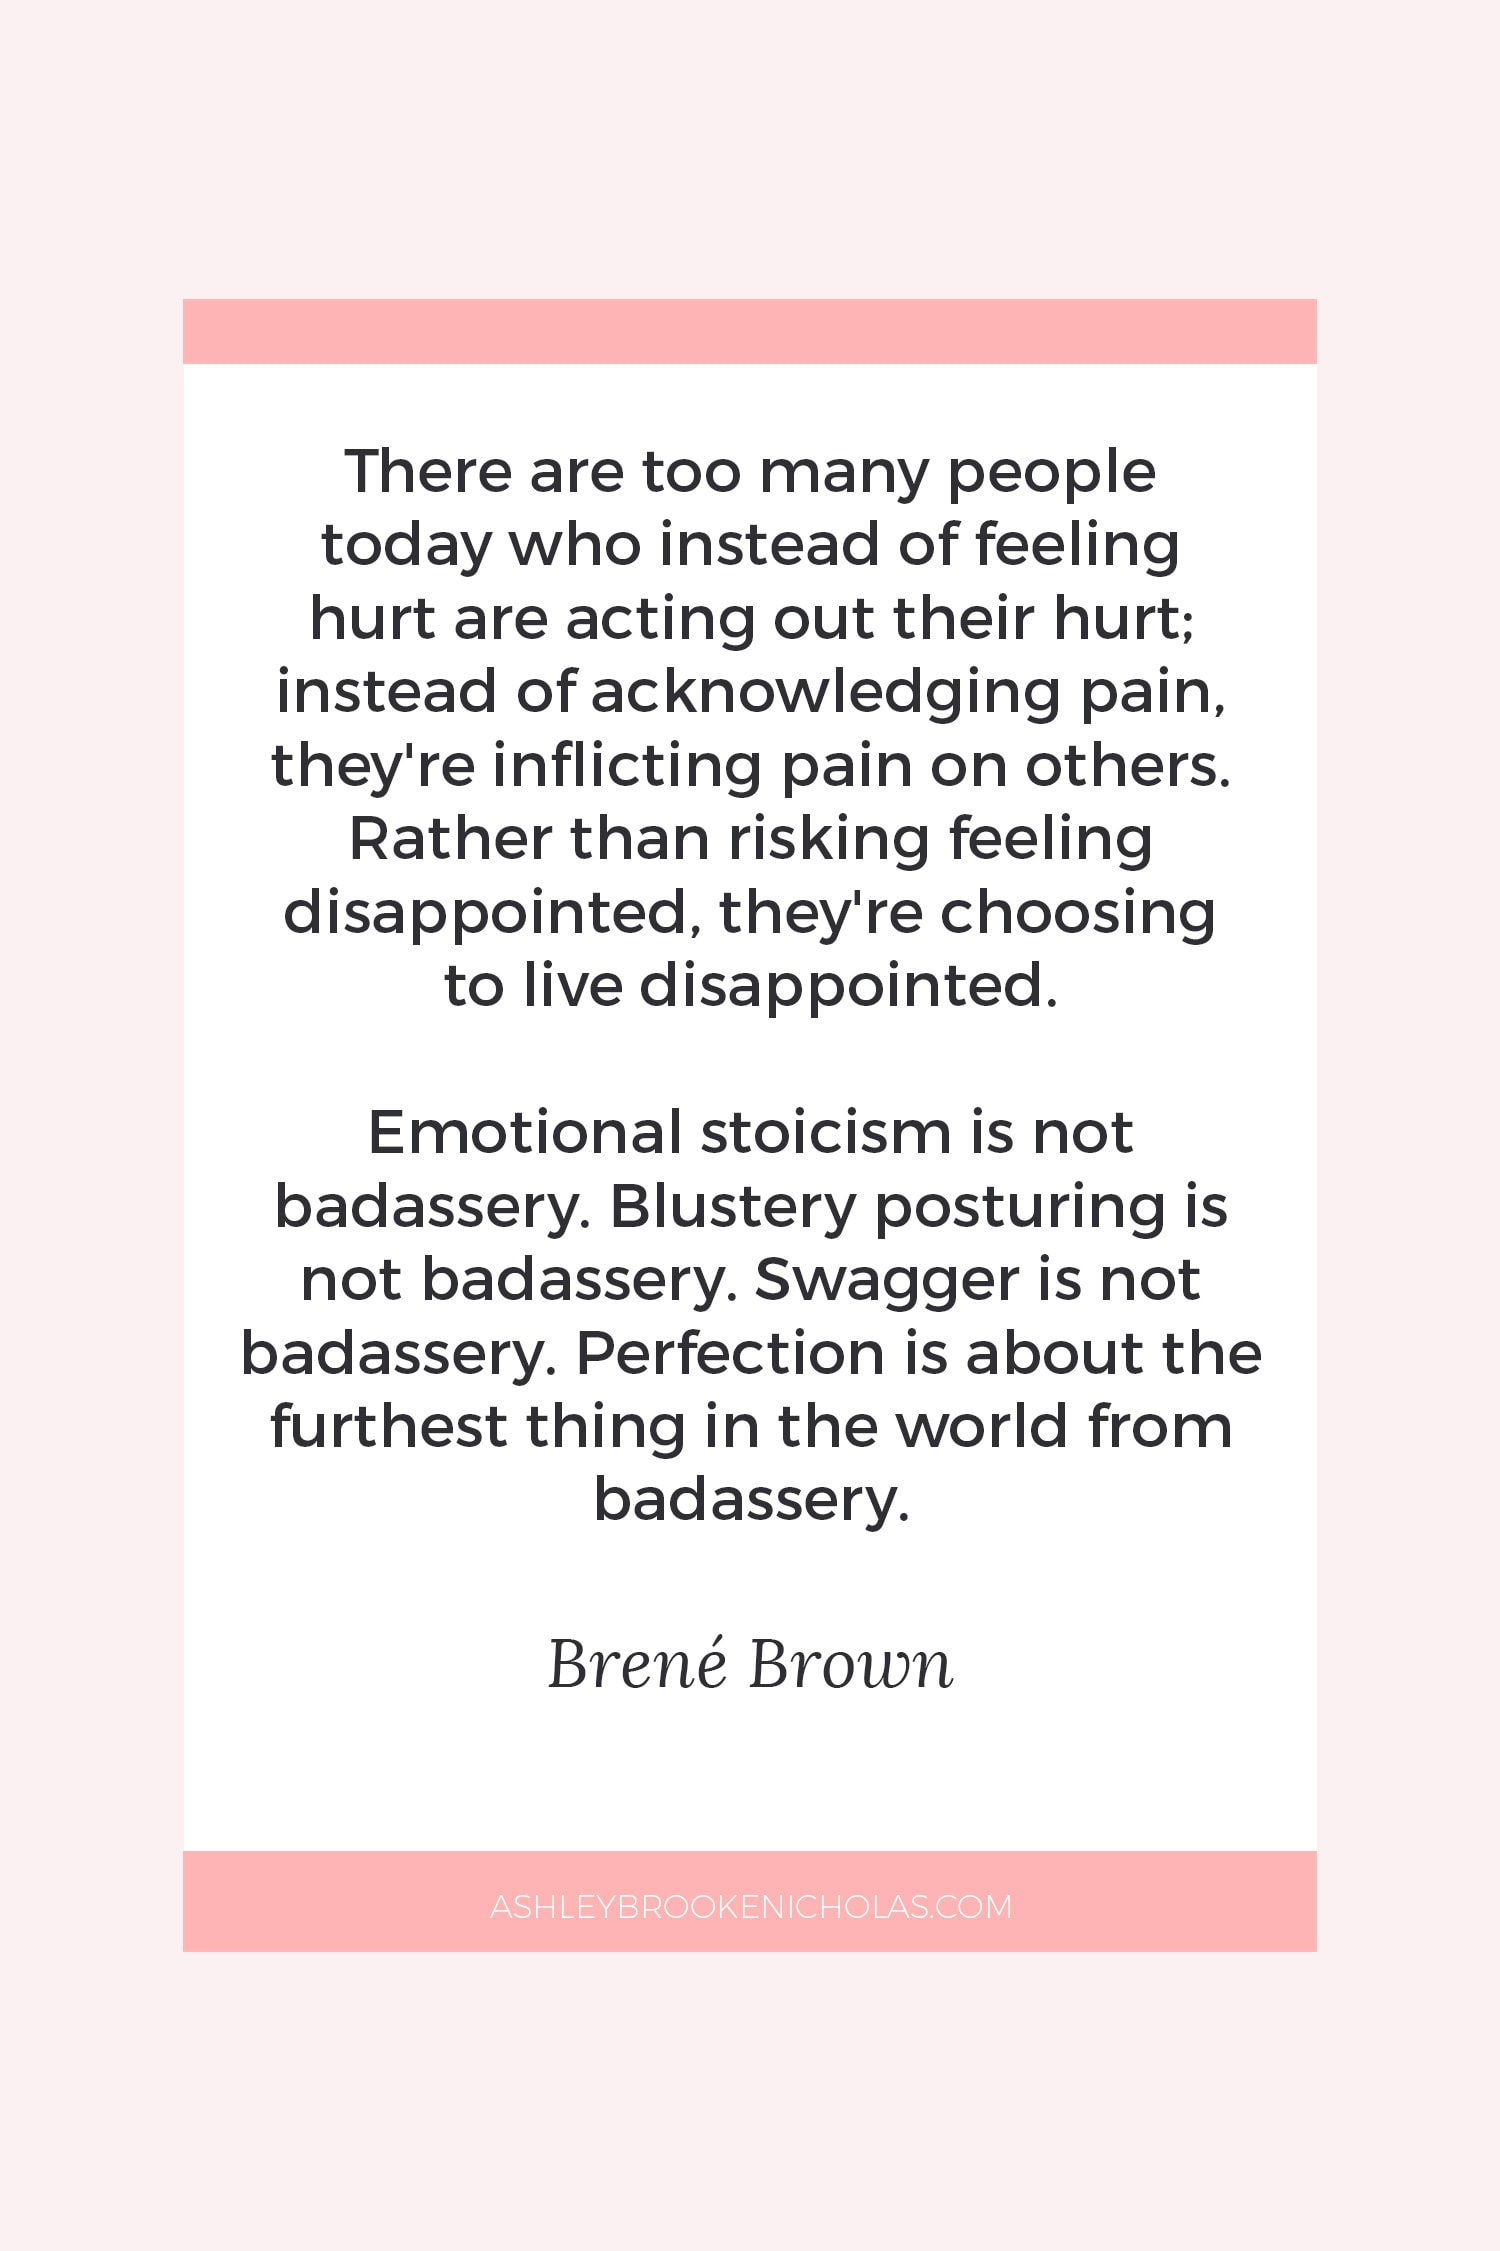 "The Best Brené Brown Quotes | ""There are too many people today who instead of feeling hurt are acting out their hurt; instead of acknowledging pain, they're inflicting pain on others. Rather than risking feeling disappointed, they're choosing to live disappointed. Emotional stoicism is not badassery. Blustery posturing is not badassery. Swagger is not badassery. Perfection is about the furthest thing in the world from badassery."""